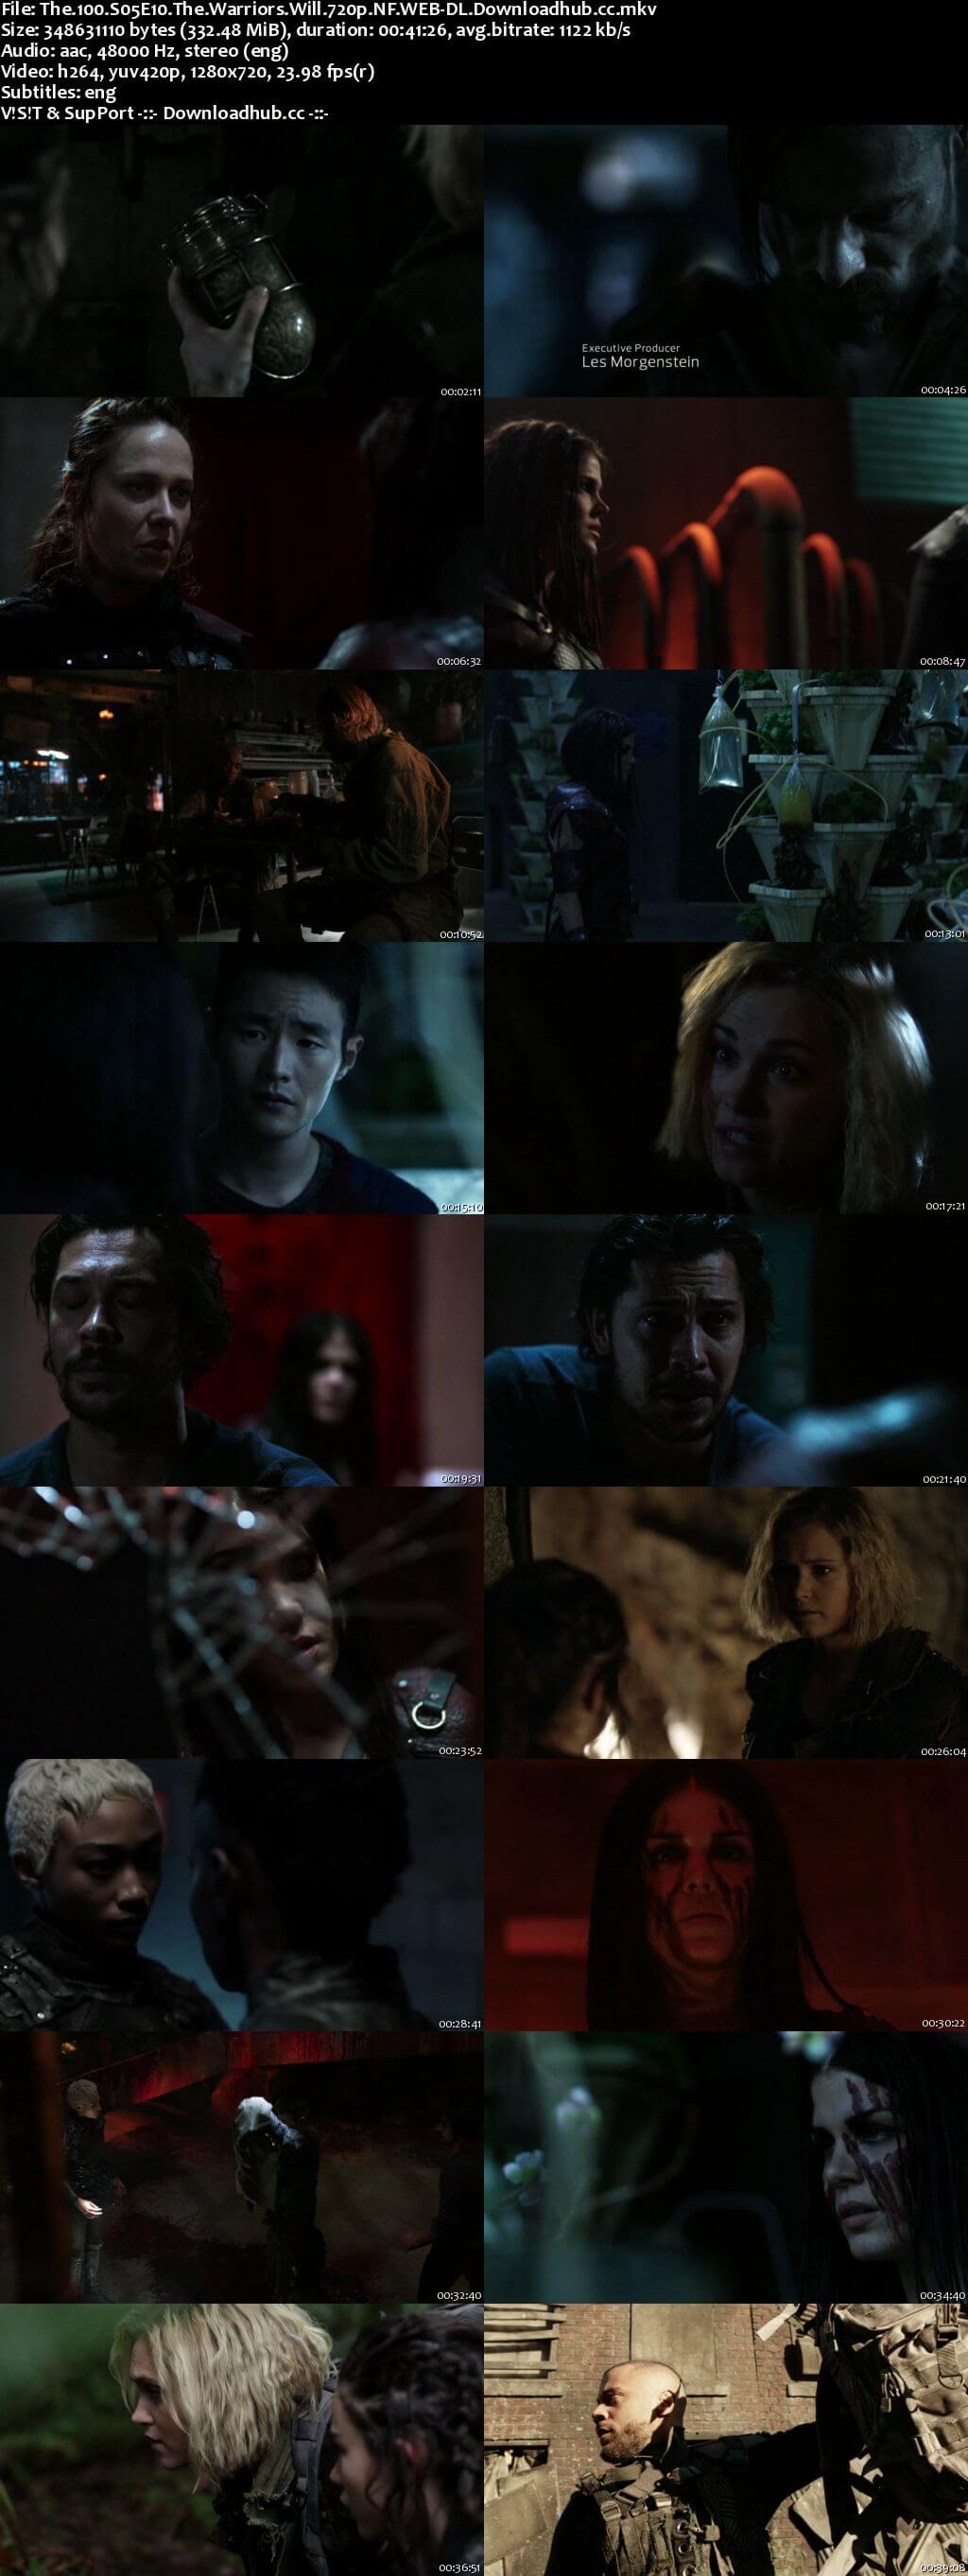 The 100 S05E10 340MB WEB-DL 720p x264 ESubs